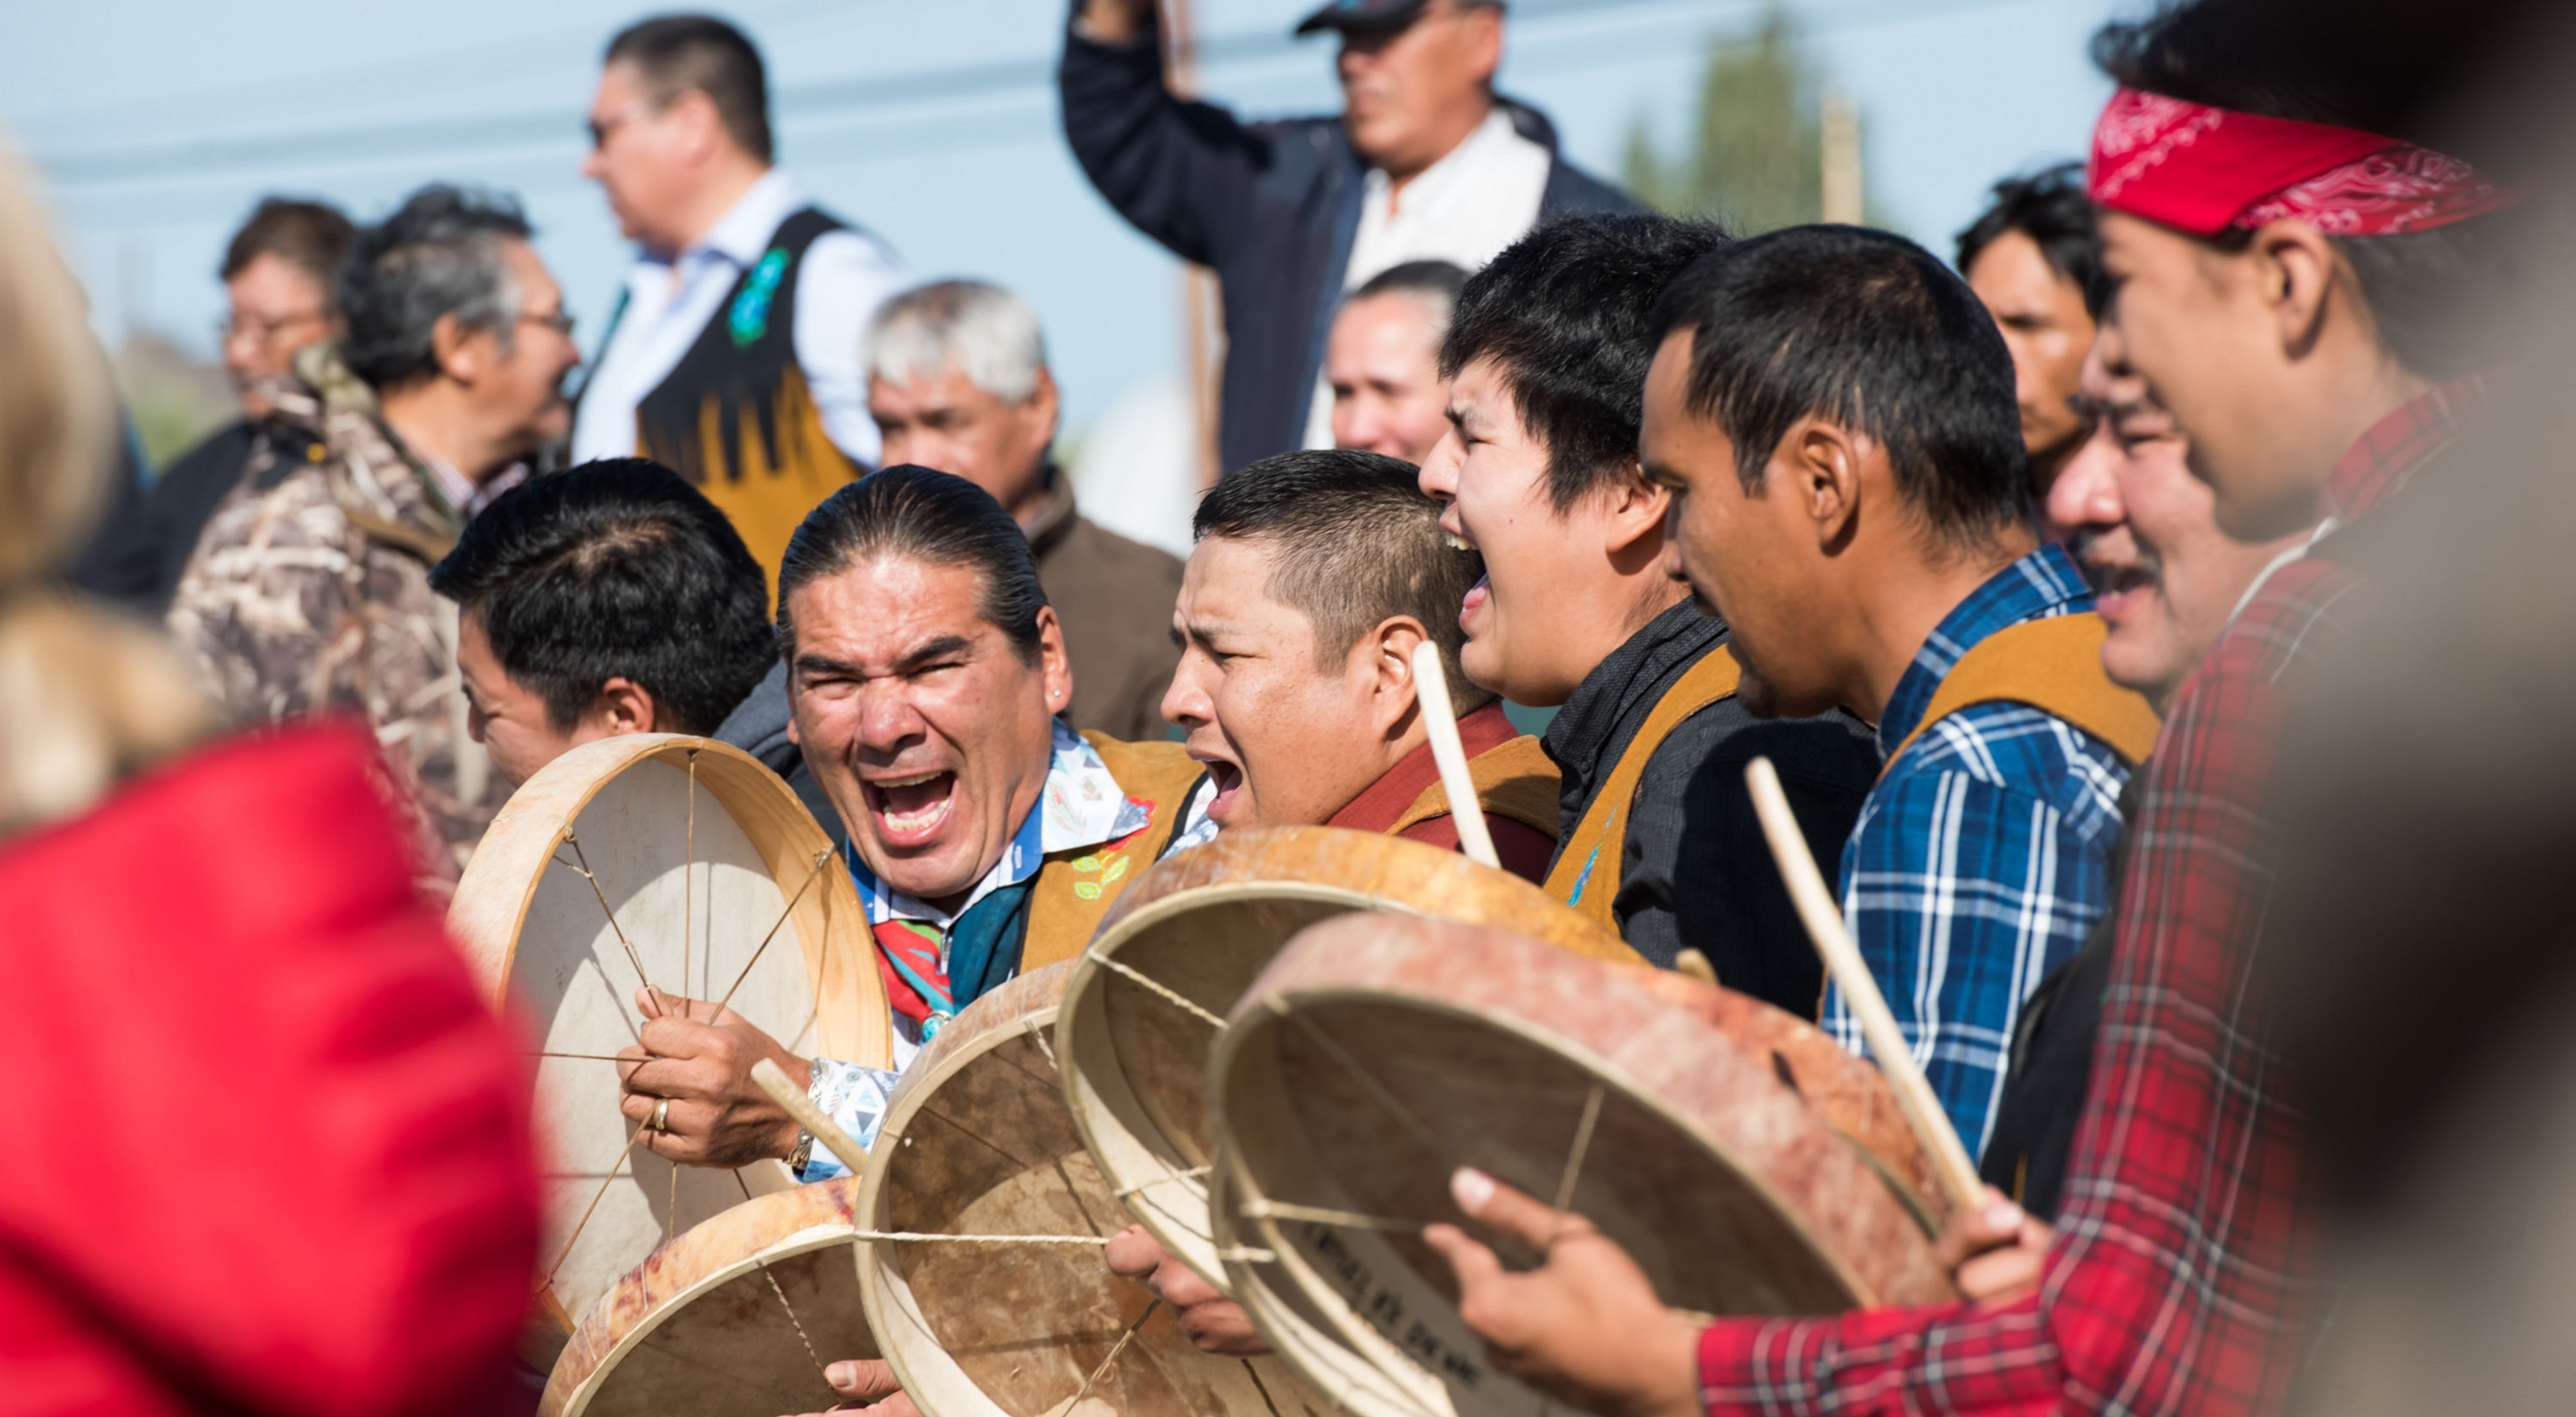 On August 21, Łutsël K'é Dene First Nation signed Establishment Agreements with Parks Canada and the Government of the Northwest Territories that mark a historic milestone for Thaidene Nëné. A fire ceremony and drum circle took place after the agreements were signed.